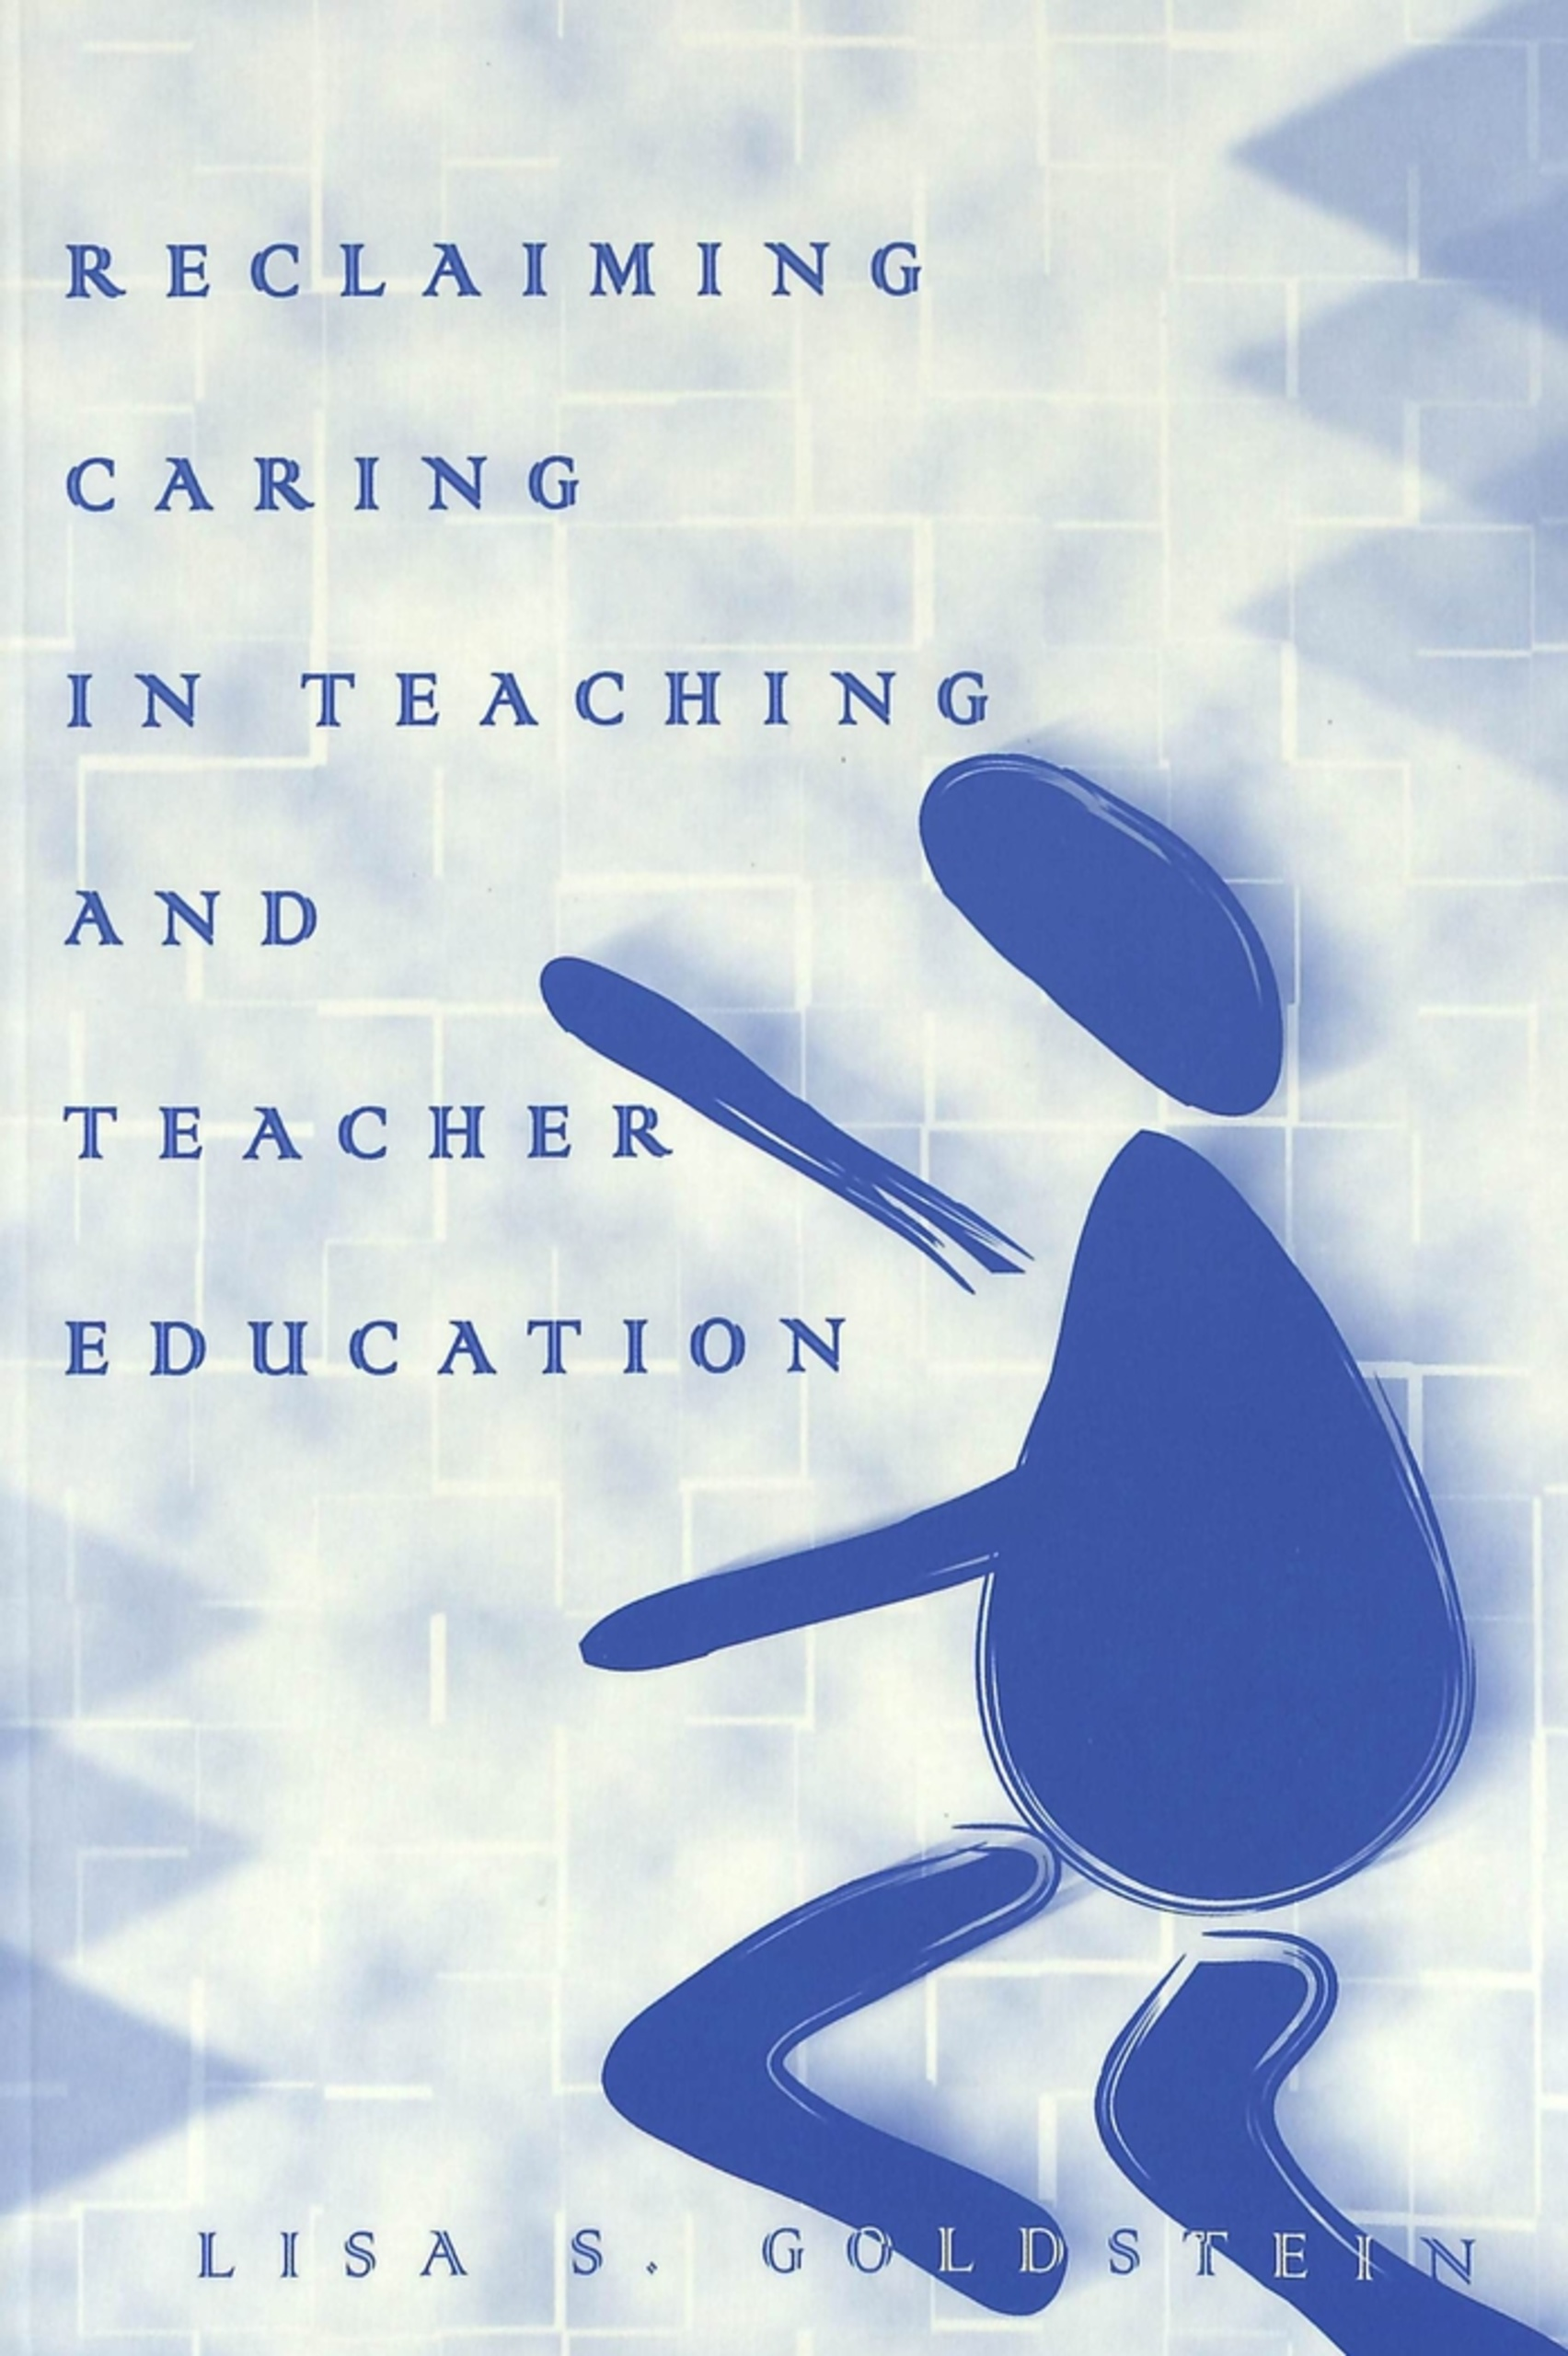 Title: Reclaiming Caring in Teaching and Teacher Education